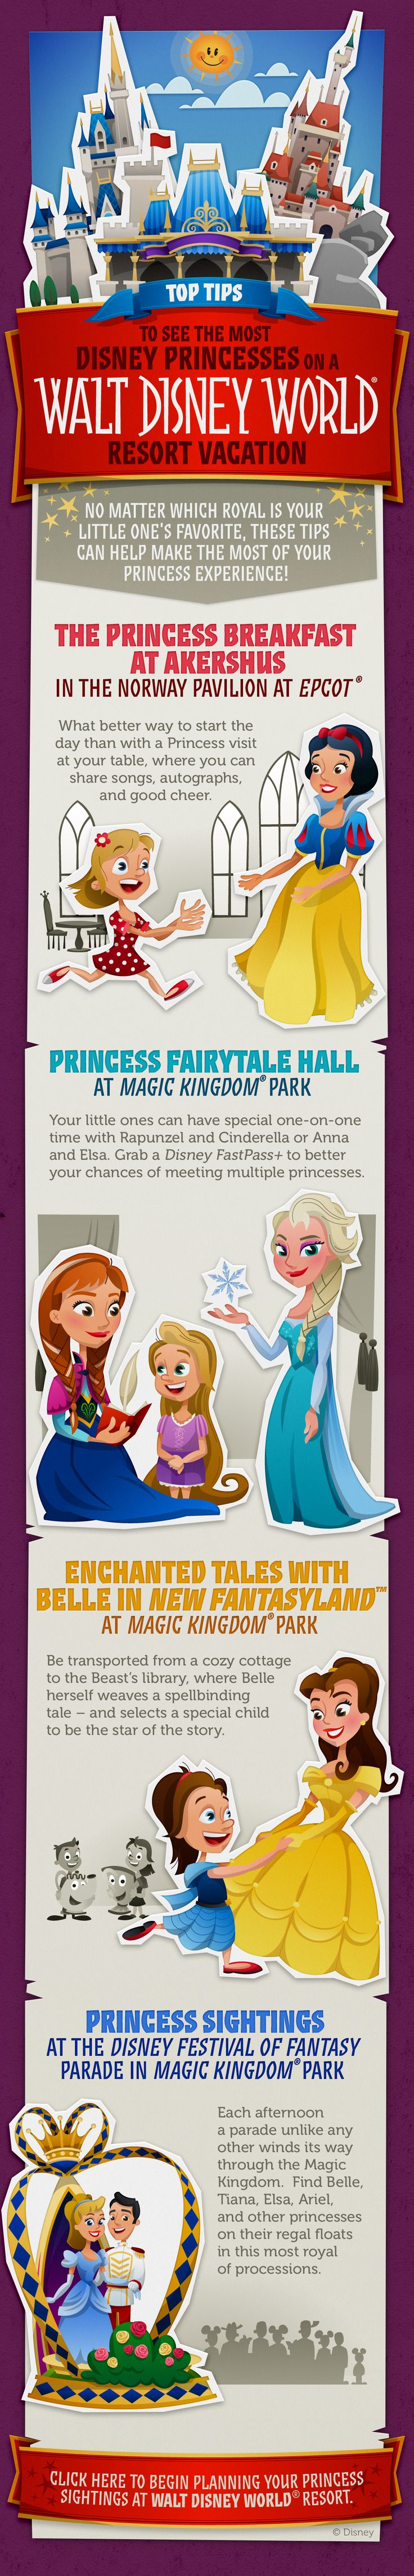 Top Tips to see the most Disney Princesses on a Walt Disney World Resort Vacation! See your favorite characters from Snow White, Frozen, Beauty and the Beast, Cinderella and The Little Mermaid! #DisneyKids